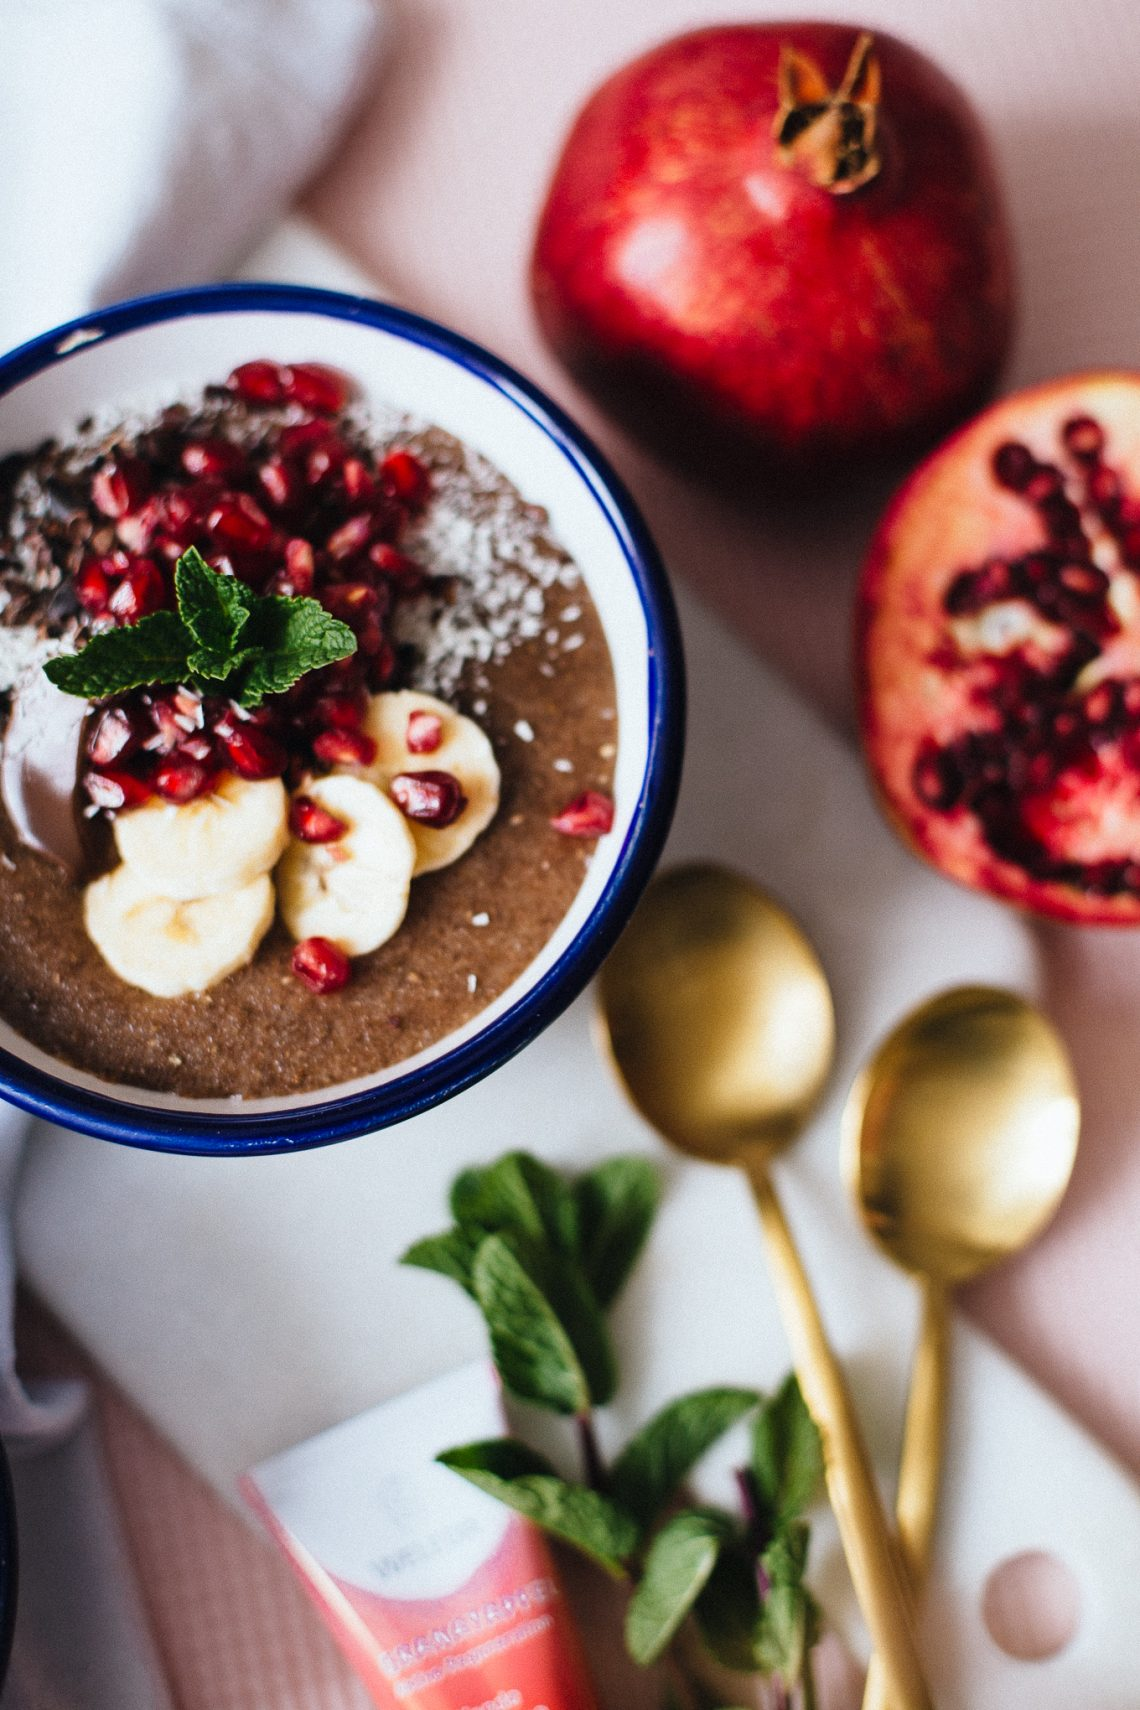 The Power Of Pomegranate – Inside & Out